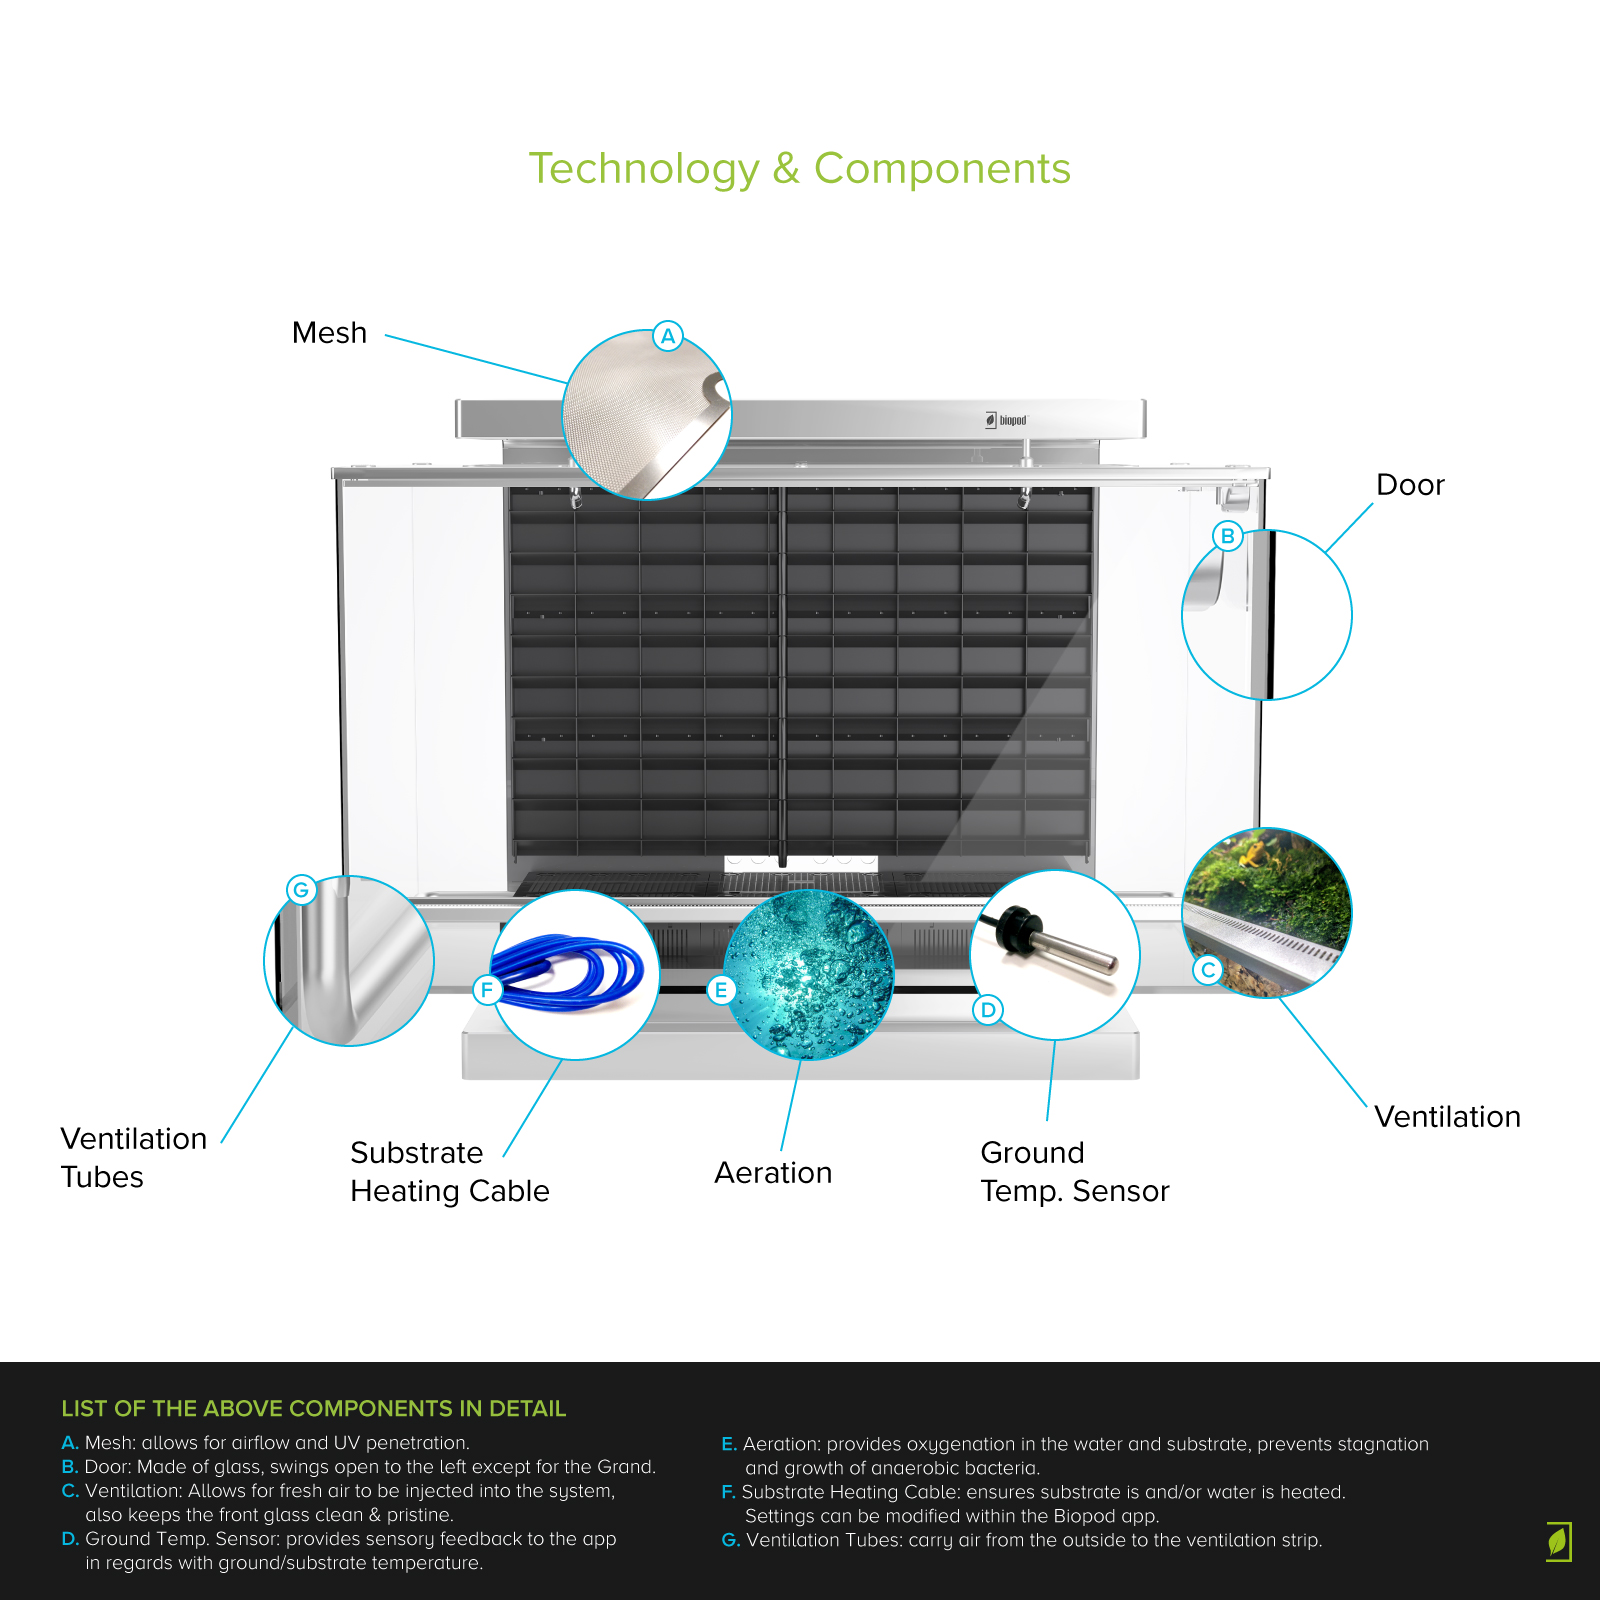 Biopod_Web_Graphics_Components_2017_v03c